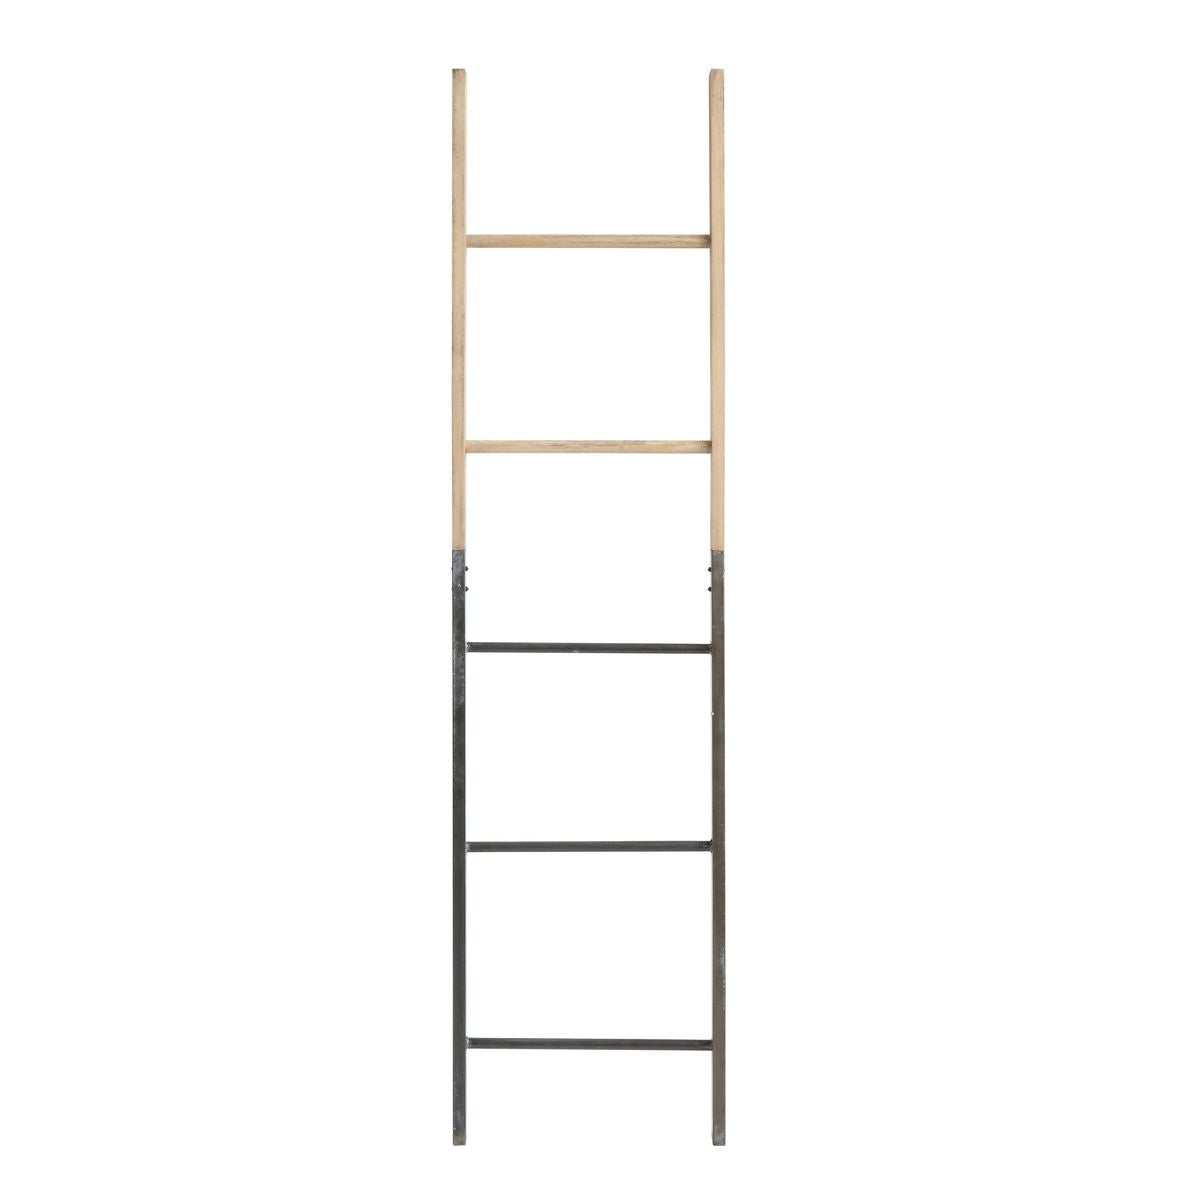 Decorative Metal & Wood Ladder